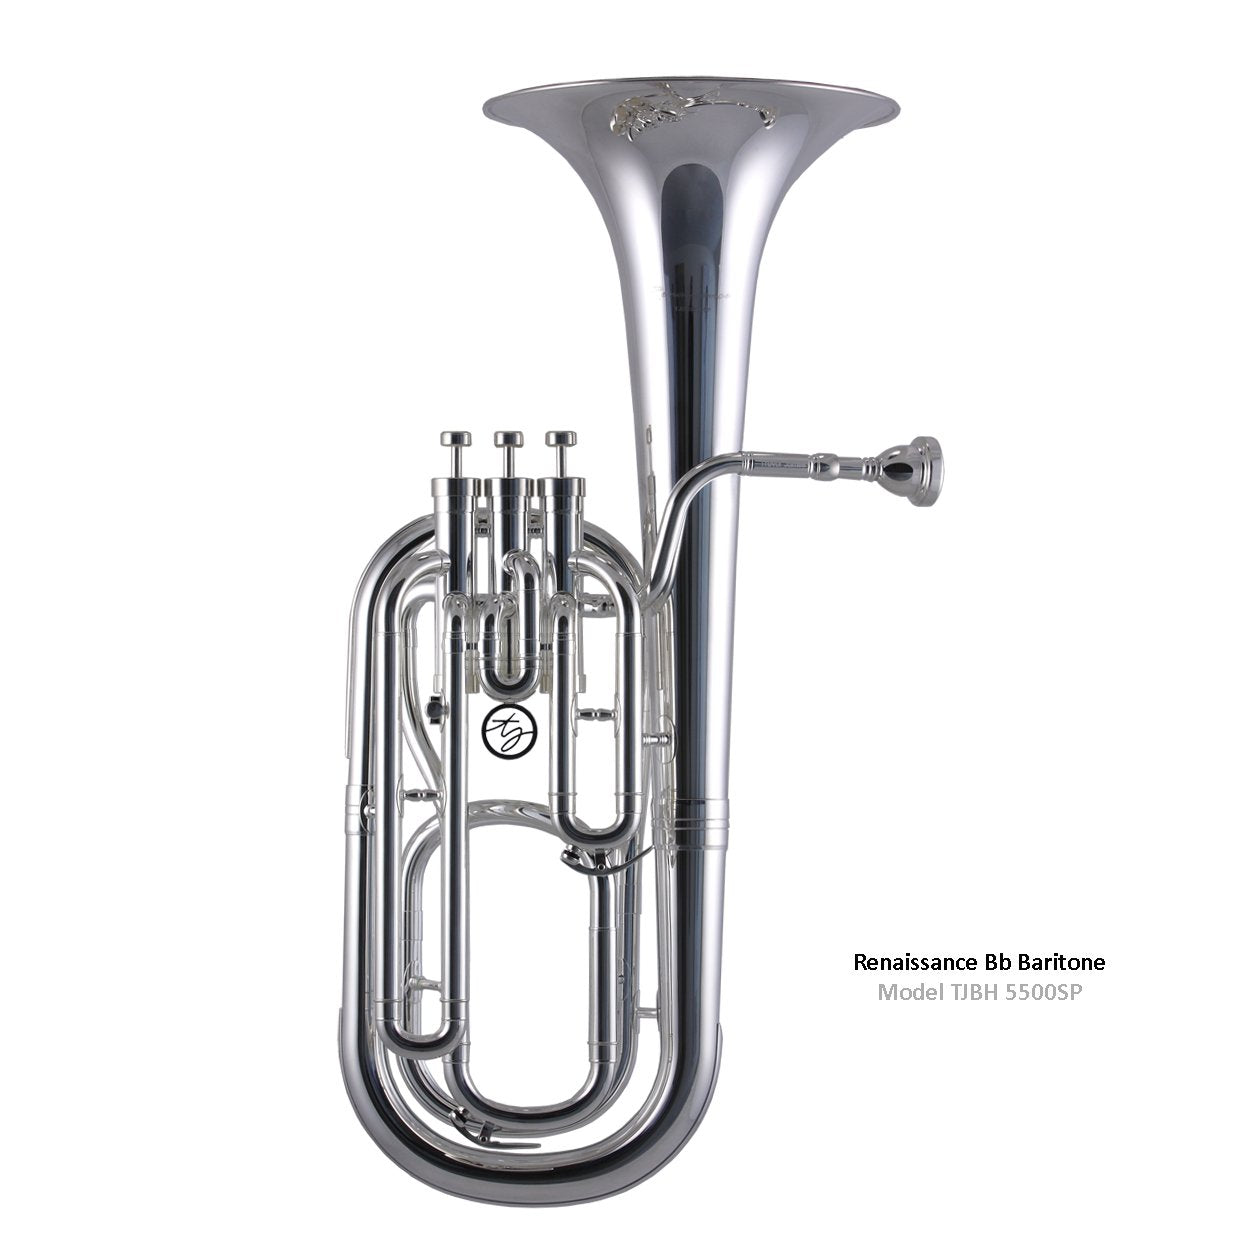 Trevor James - 5500SP Renaissance Bb Baritone-Baritone-Trevor James-Music Elements